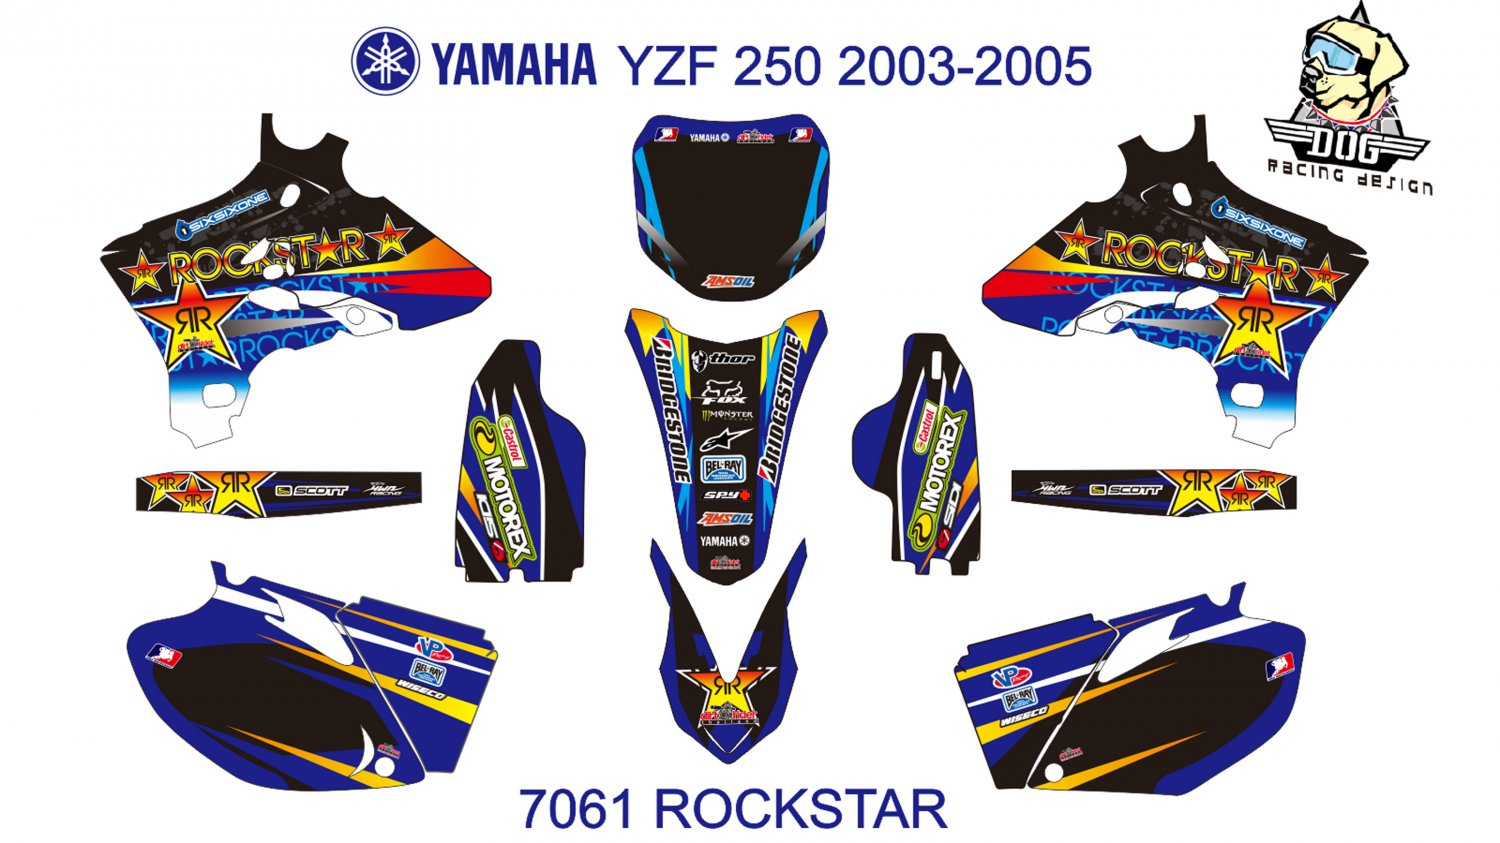 YAMAHA YZF 250 2003-2005 GRAPHIC DECAL KIT CODE.7061